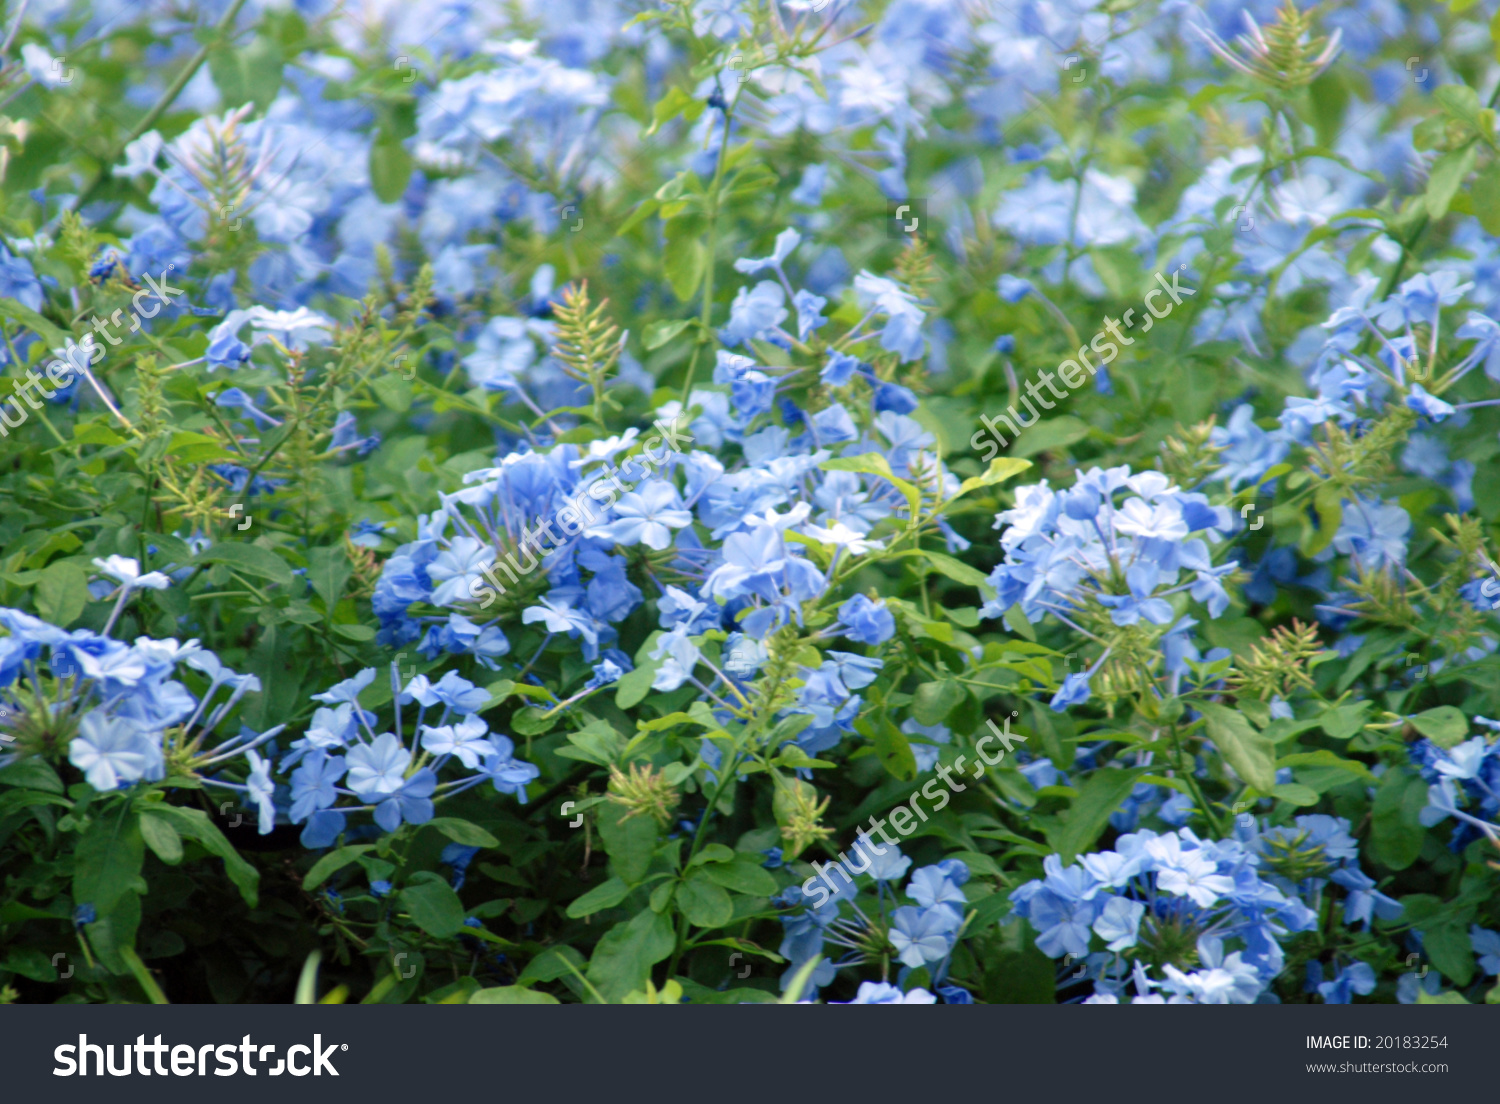 Closeup Plan Plumbago Auriculata Widely Known Stock Photo 20183254.